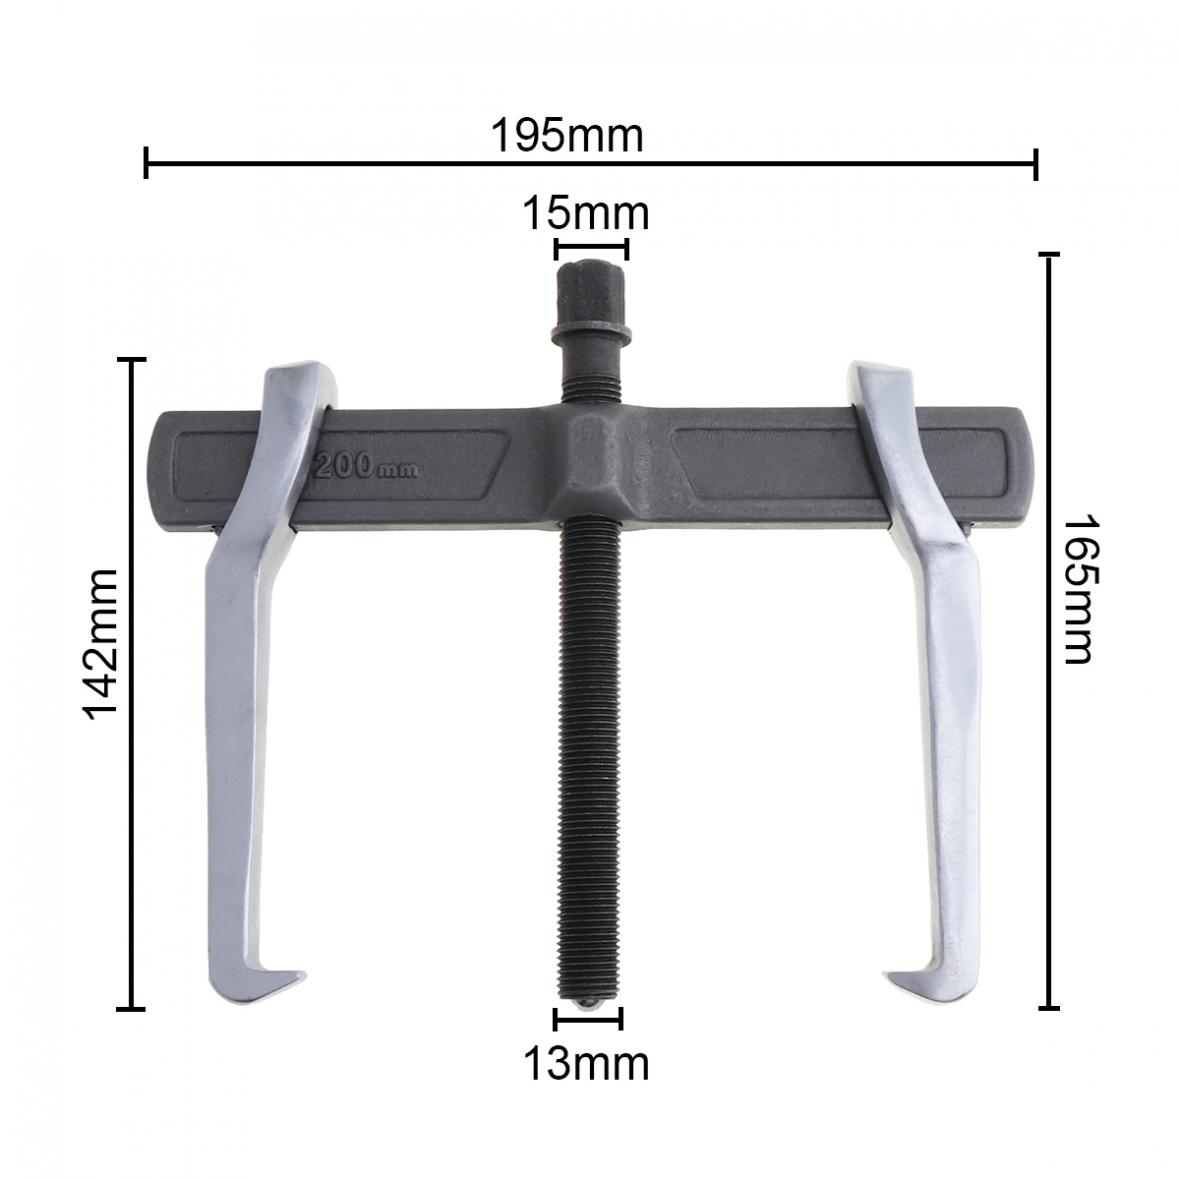 Tools : 8 Inch Single Hook CR-V Two Claws Puller Separate Lifting Device Strengthen Bearing Puller Rama for Auto Car Repair Hand Tools